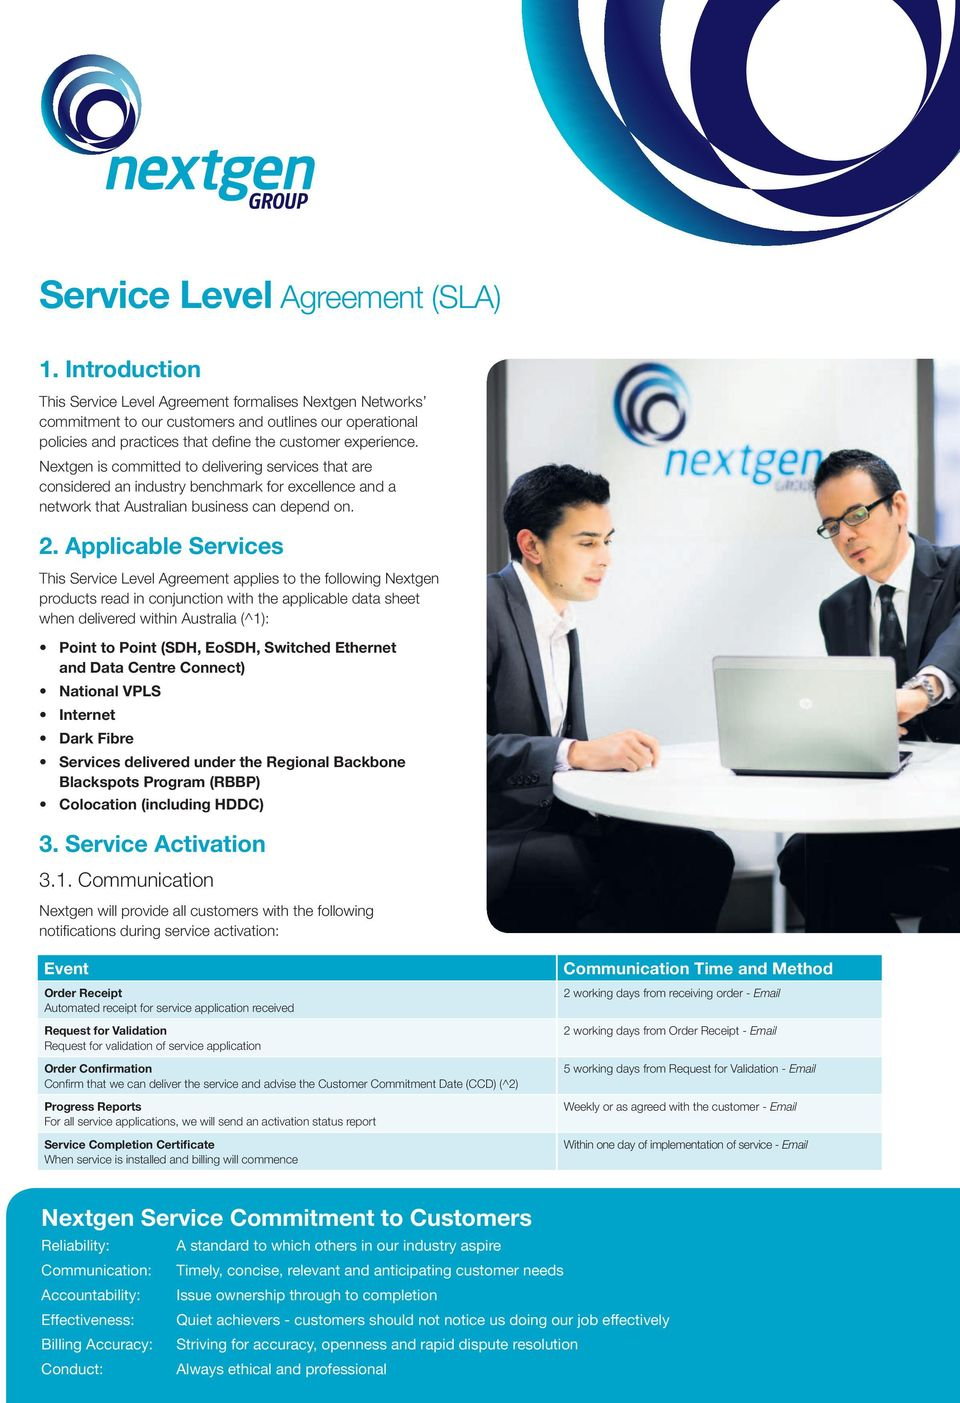 Applicable Services This Service Level Agreement applies to the following Nextgen products read in conjunction with the applicable data sheet when delivered within Australia (^1): Point to Point